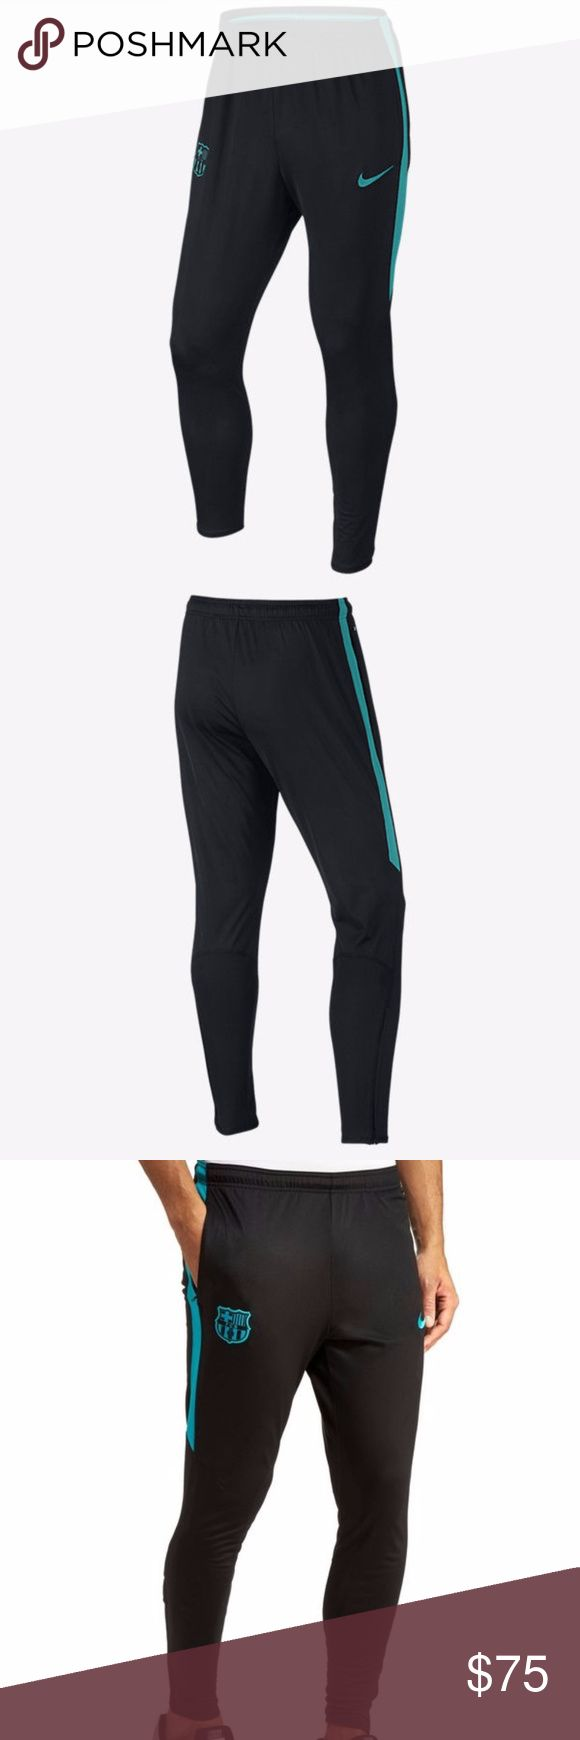 Nike FC Barcelona Dri-Fit Training Pants Sweats New with tags NIKE FC BARCELONA TRAINING PANTS 2016/17 Black/Energy SIZE LARGE $ XXL  The FC Barcelona Men's Football Pants are designed for superb mobility and ease during training and drills.  Benefits  Dri-FIT Technology helps keep you dry and comfortable Rib insets, tapered fit and ergonomic seams let you move naturally Zip hems slip easily over football boots Zip pockets for secure storage  Product Details Fabric: Body: Dri-FIT 100%…